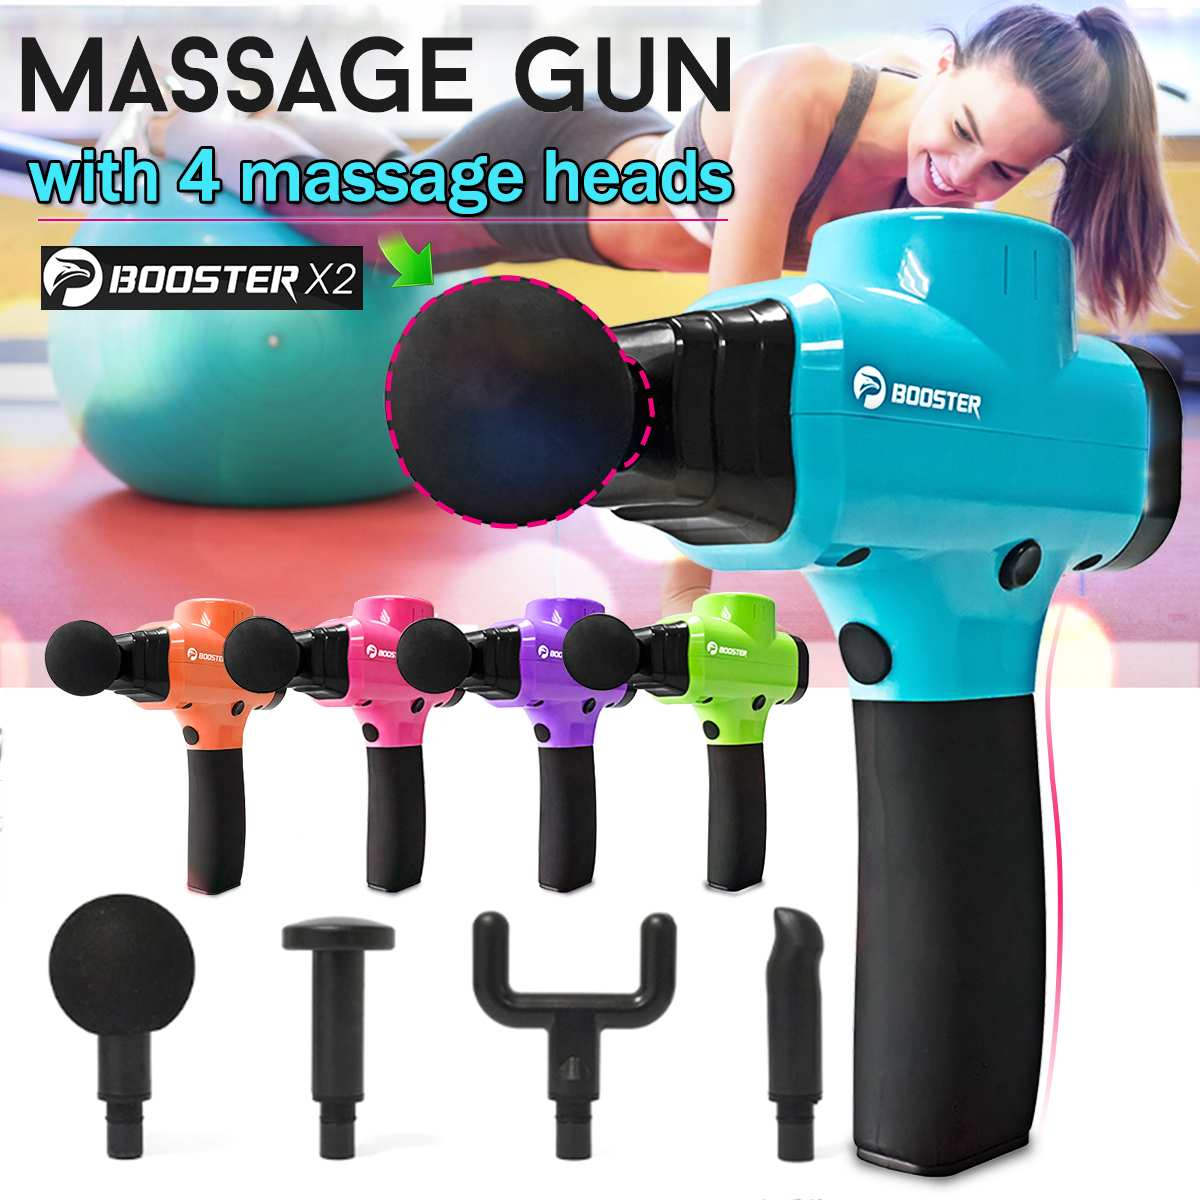 16V Muscle Relaxation Fascia Machine Fitness Deep Muscle Massager Percussion Massage Device Electric Massager Shock Stimulator16V Muscle Relaxation Fascia Machine Fitness Deep Muscle Massager Percussion Massage Device Electric Massager Shock Stimulator